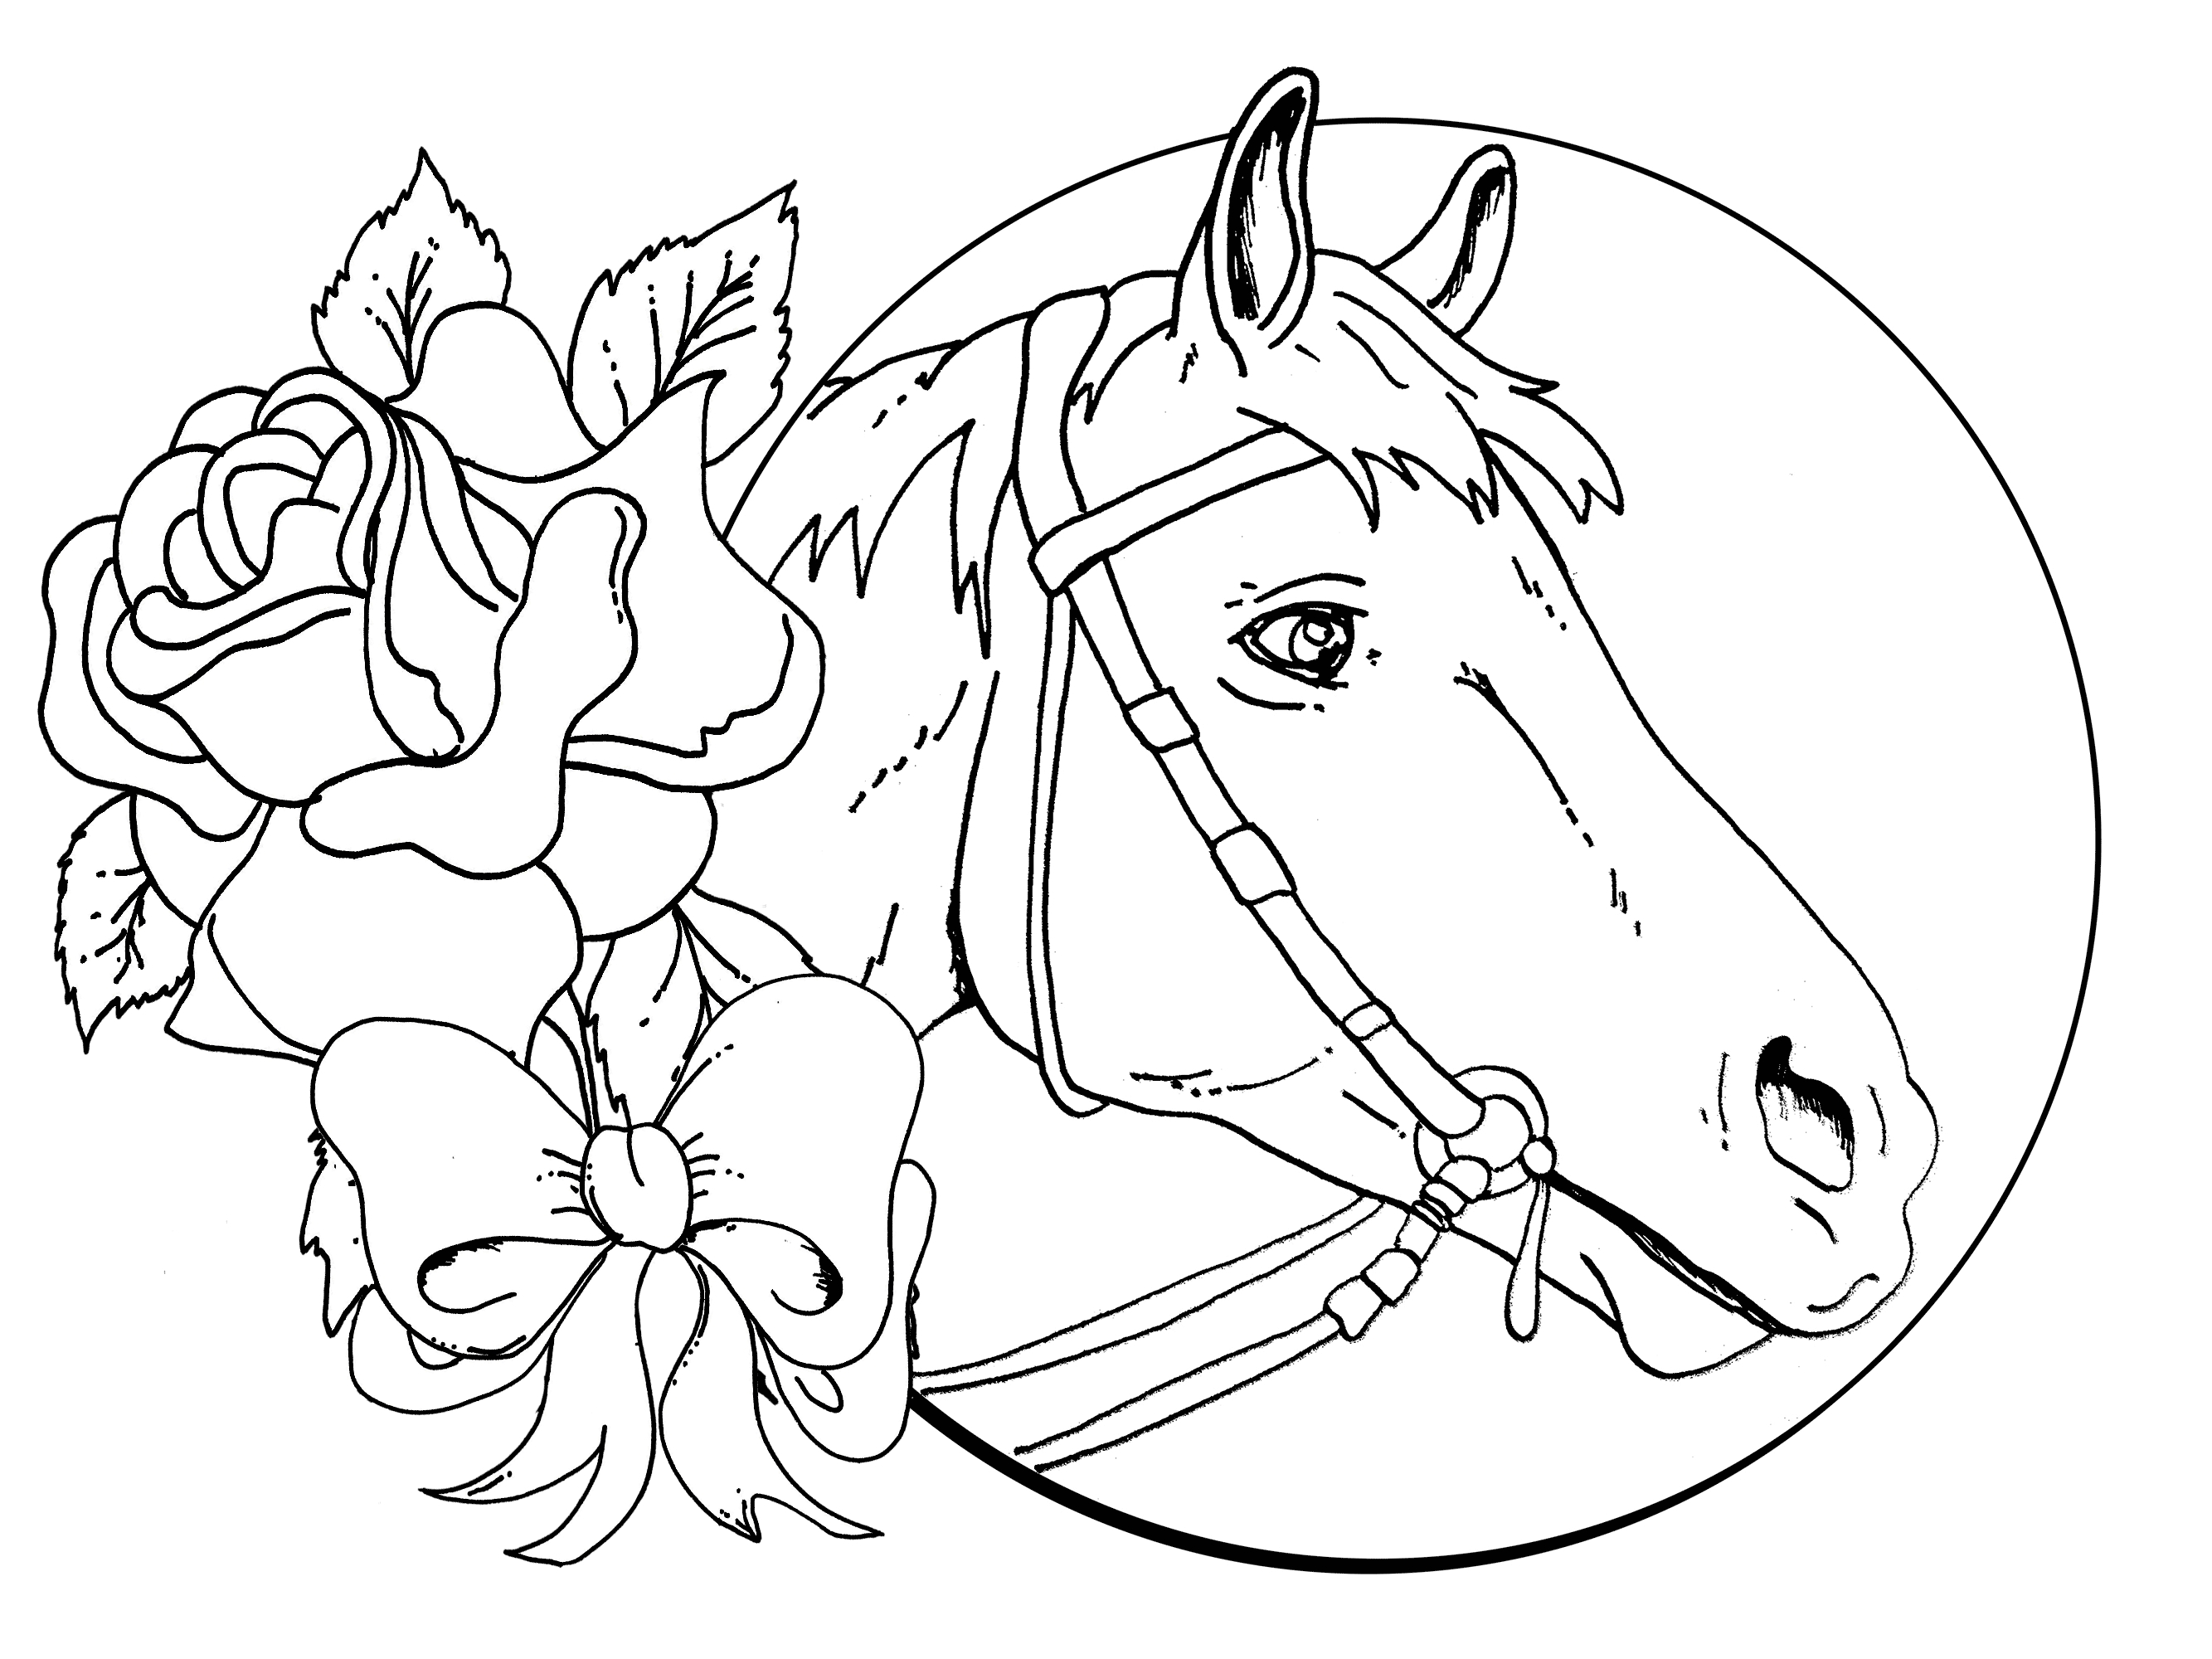 free coloring pages for girls - Coloring Pages for Girls